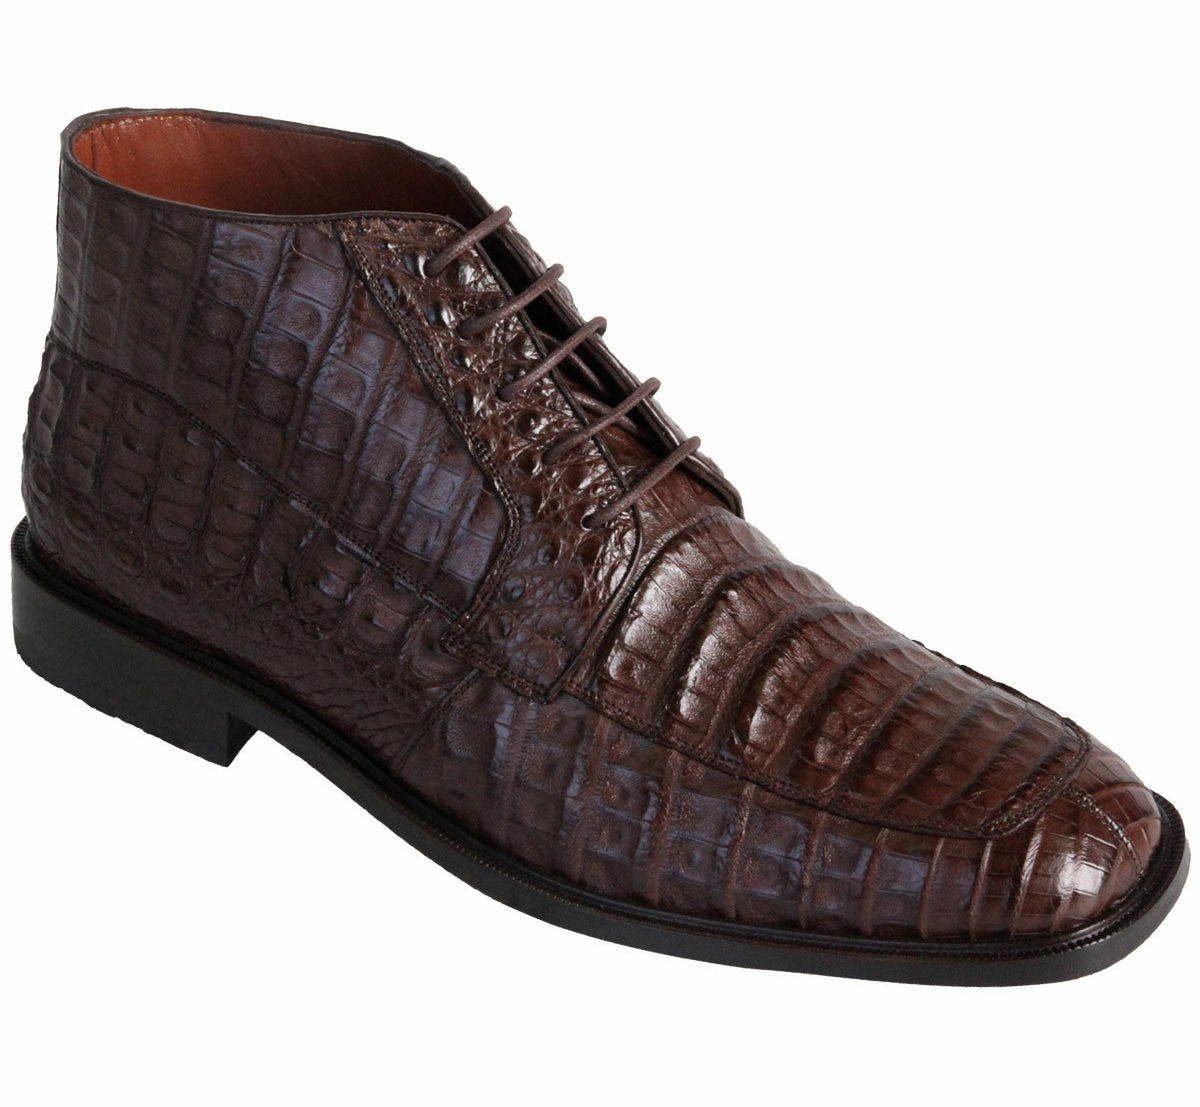 Los Altos Genuine Crocodile Belly Dress Ankle stivali Leather Outsole High Top EE+